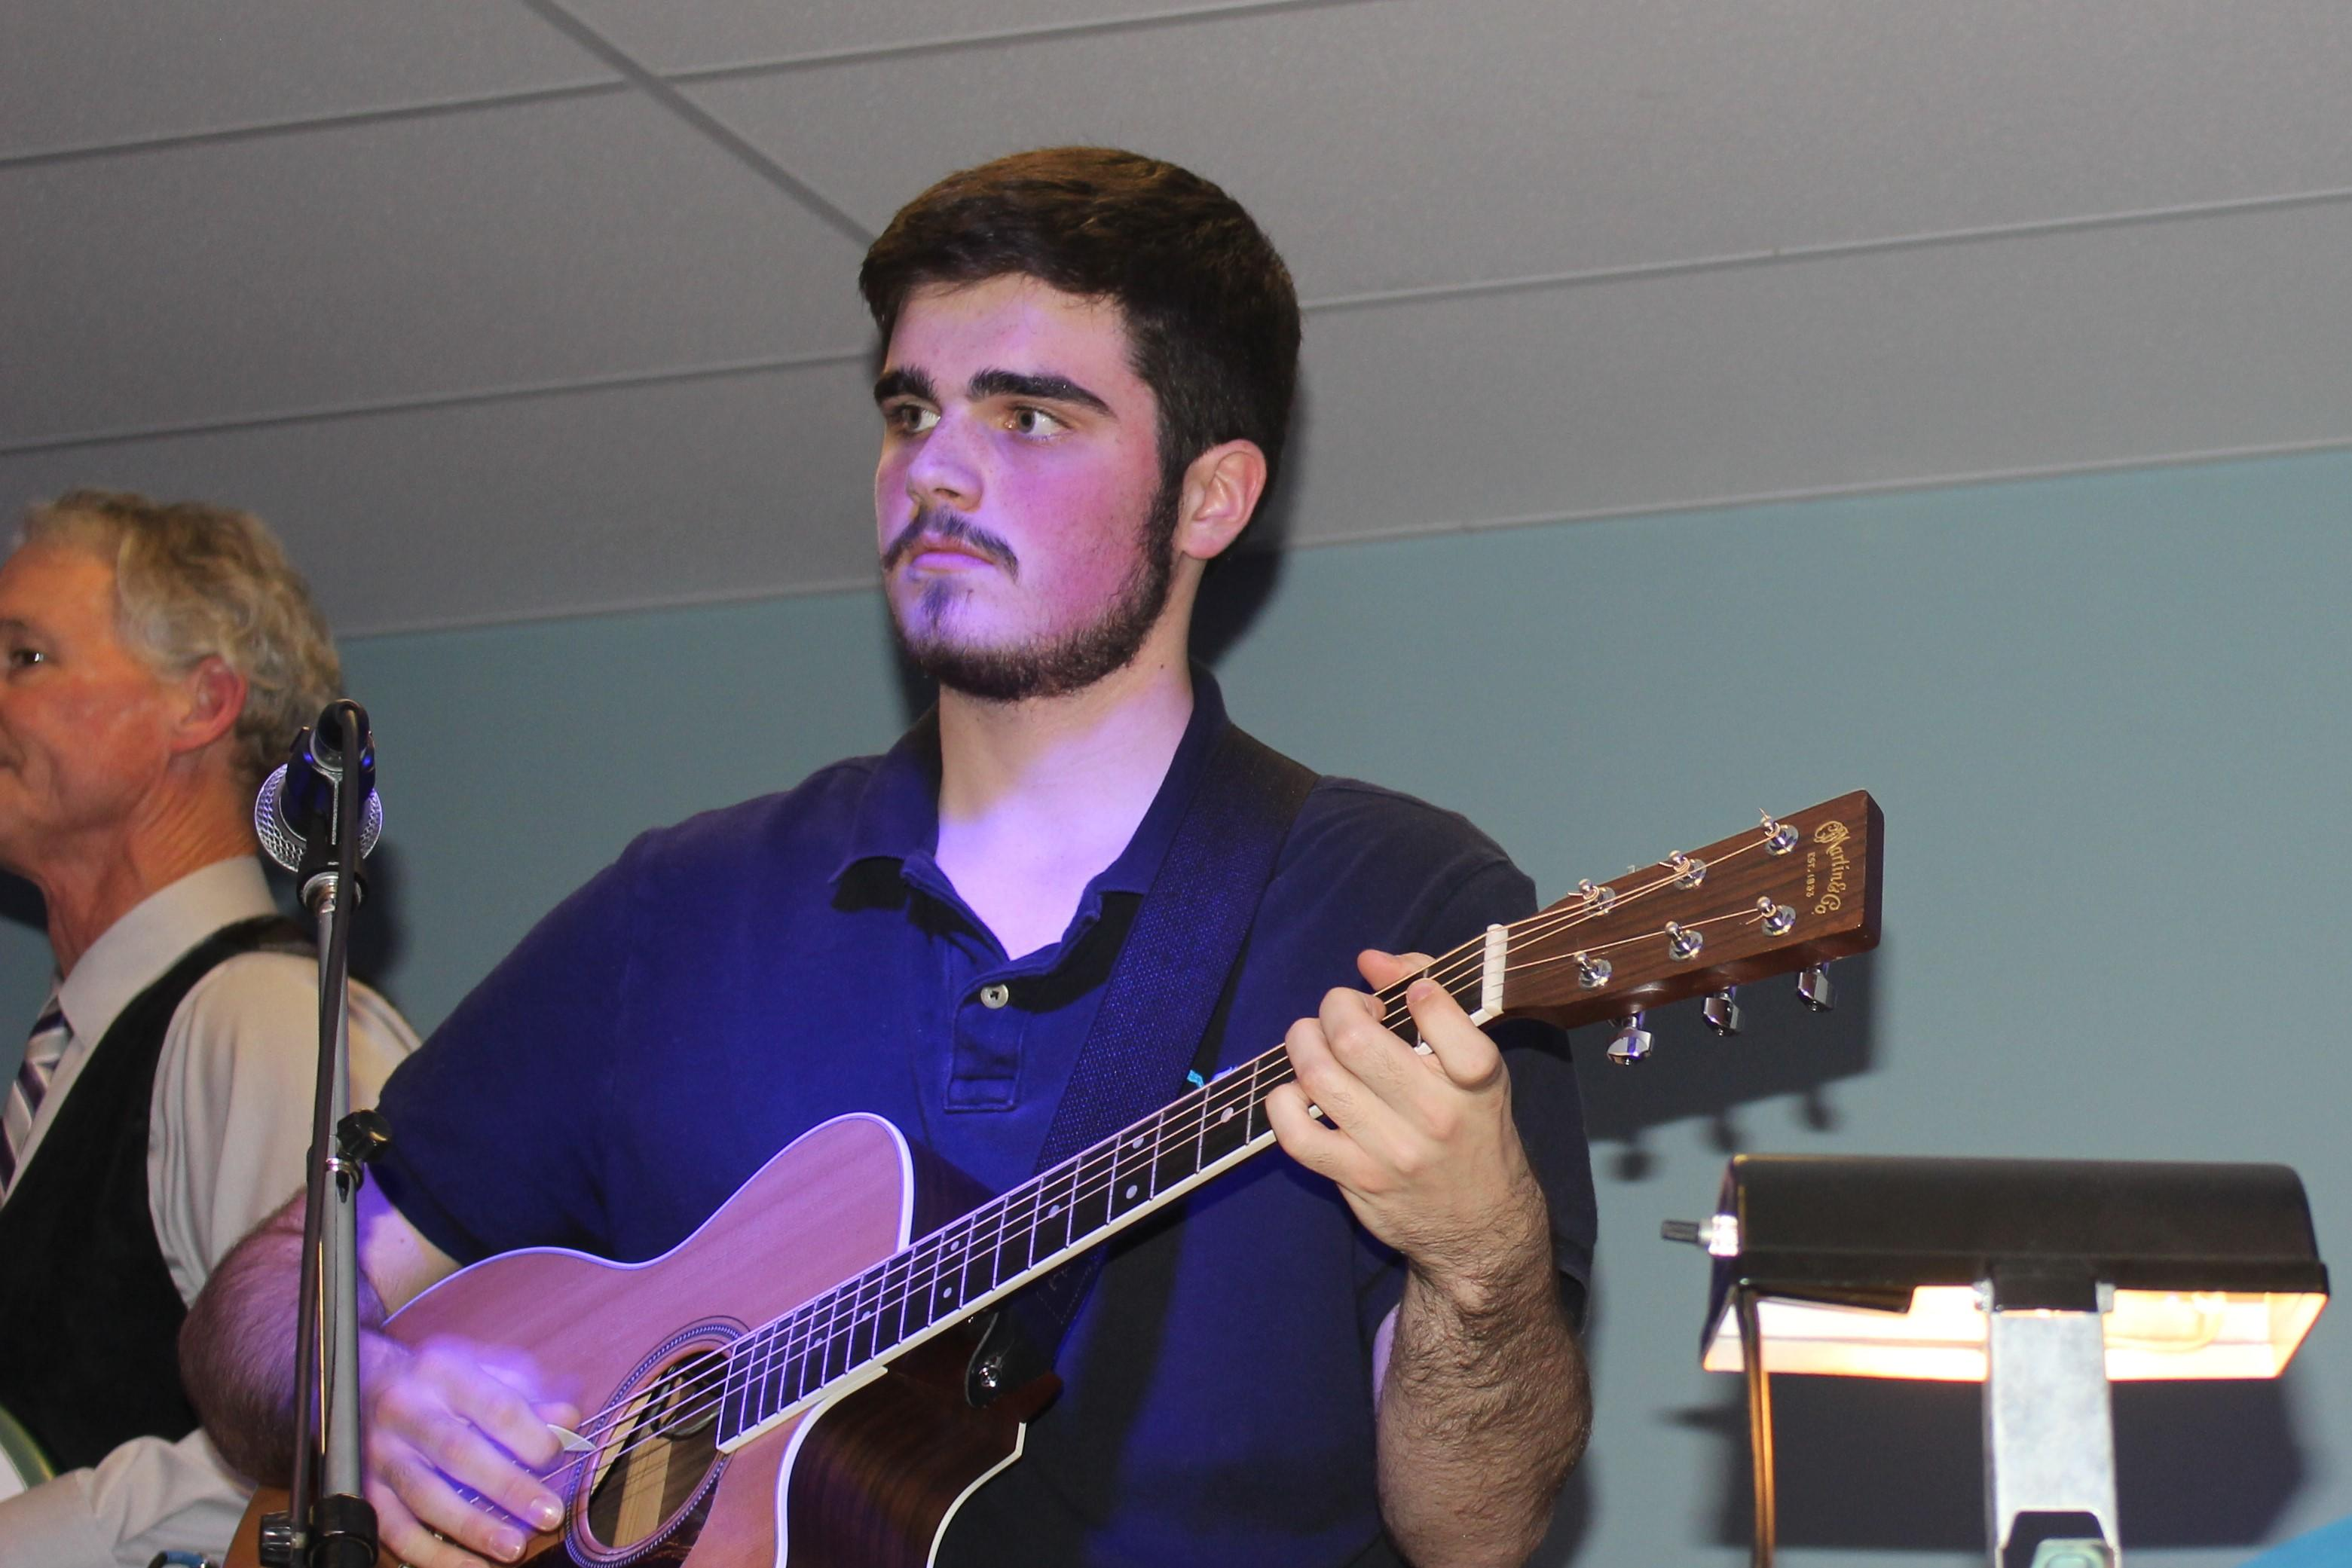 A student playing the guitar